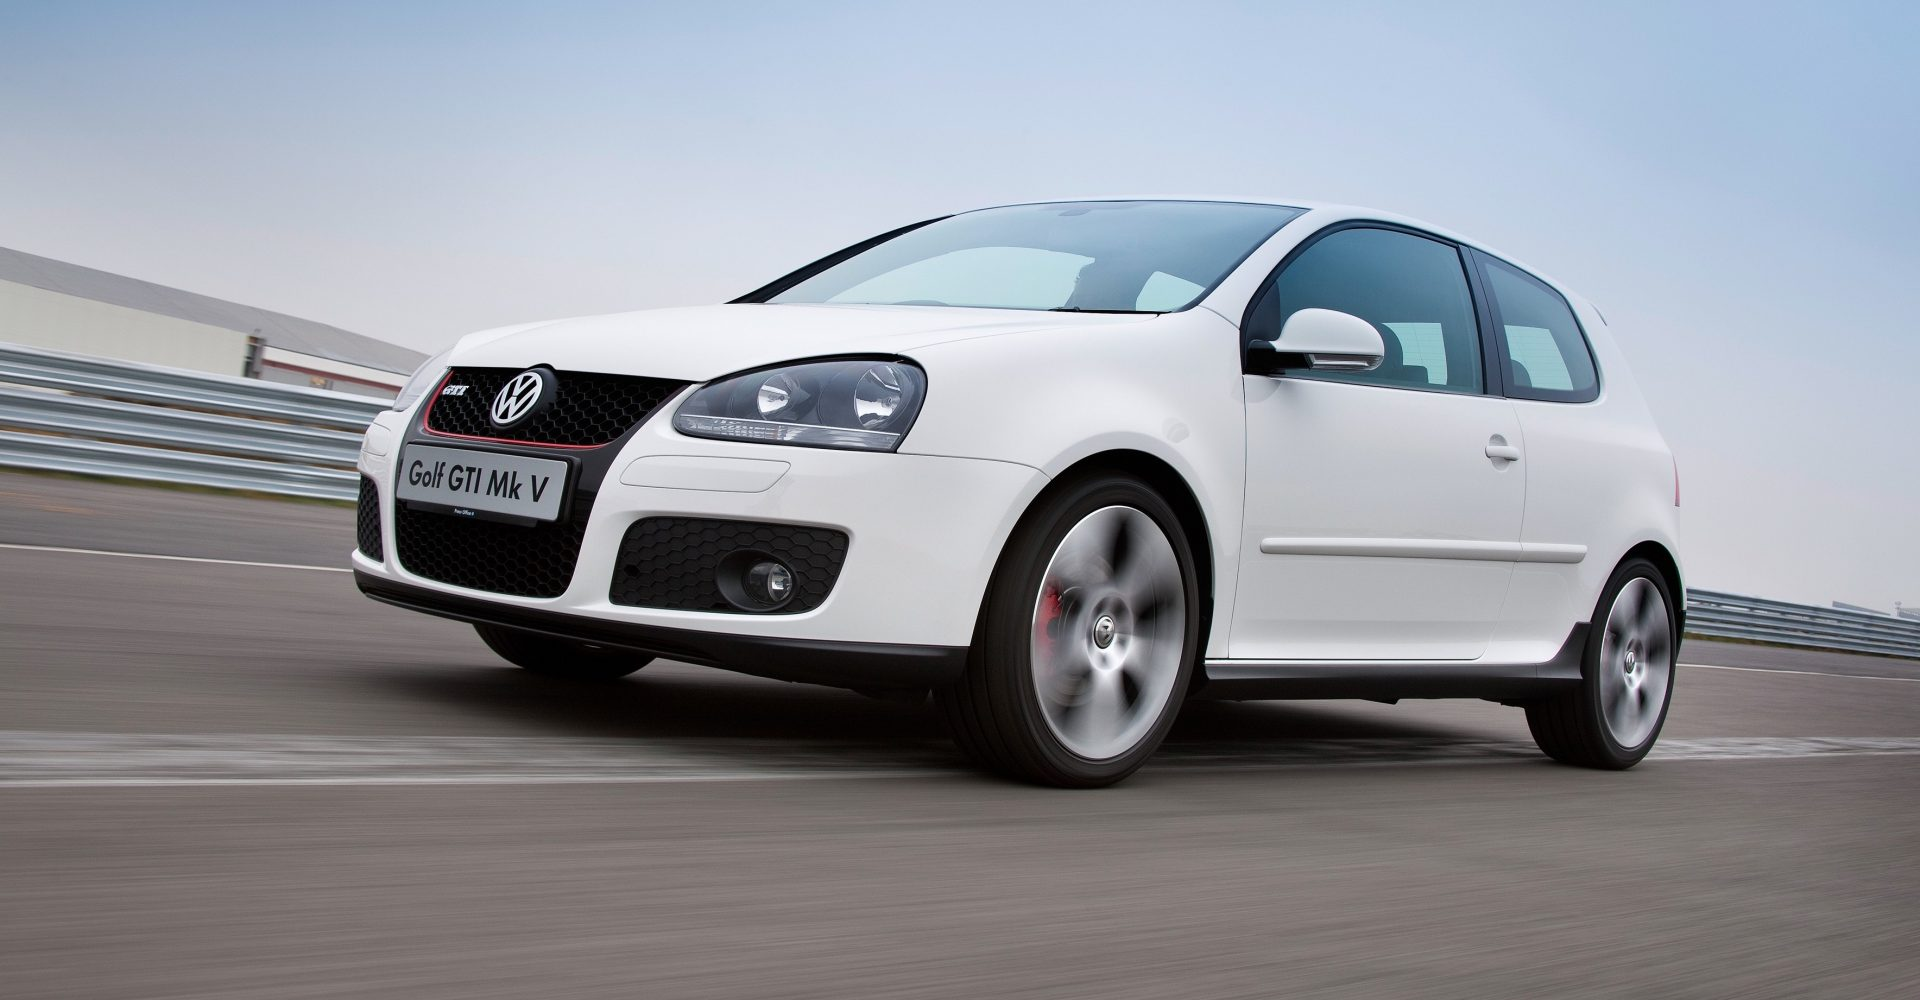 Buy these used hot hatches before they're gone